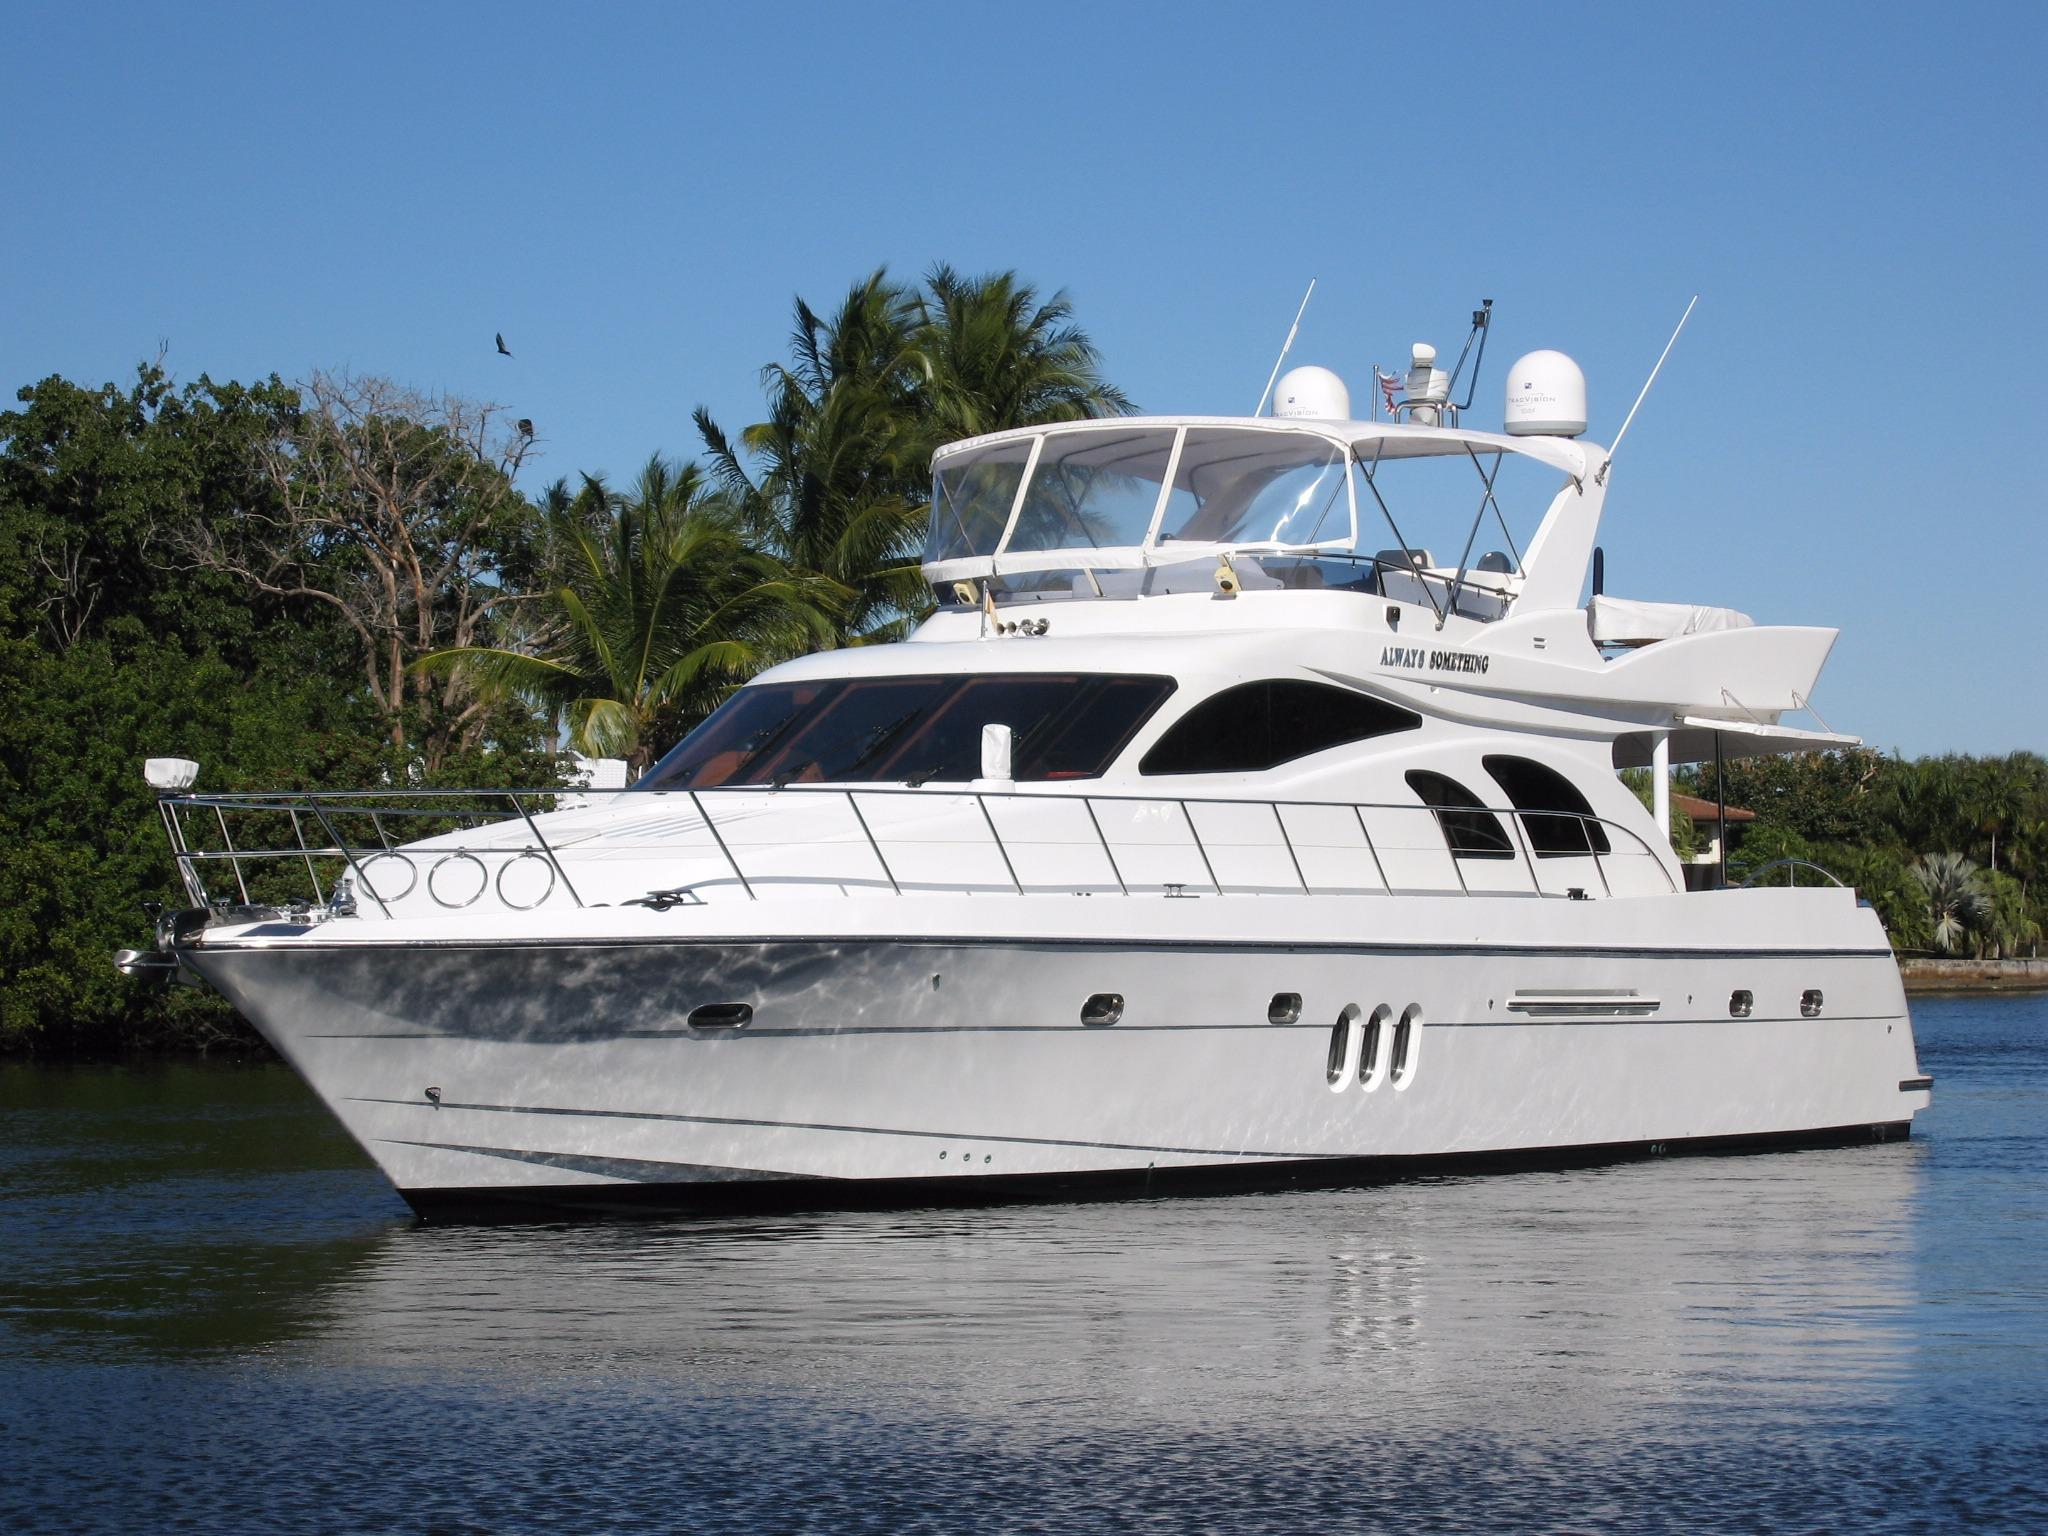 2009 Grand Harbour 66 Motoryacht Power Boat For Sale